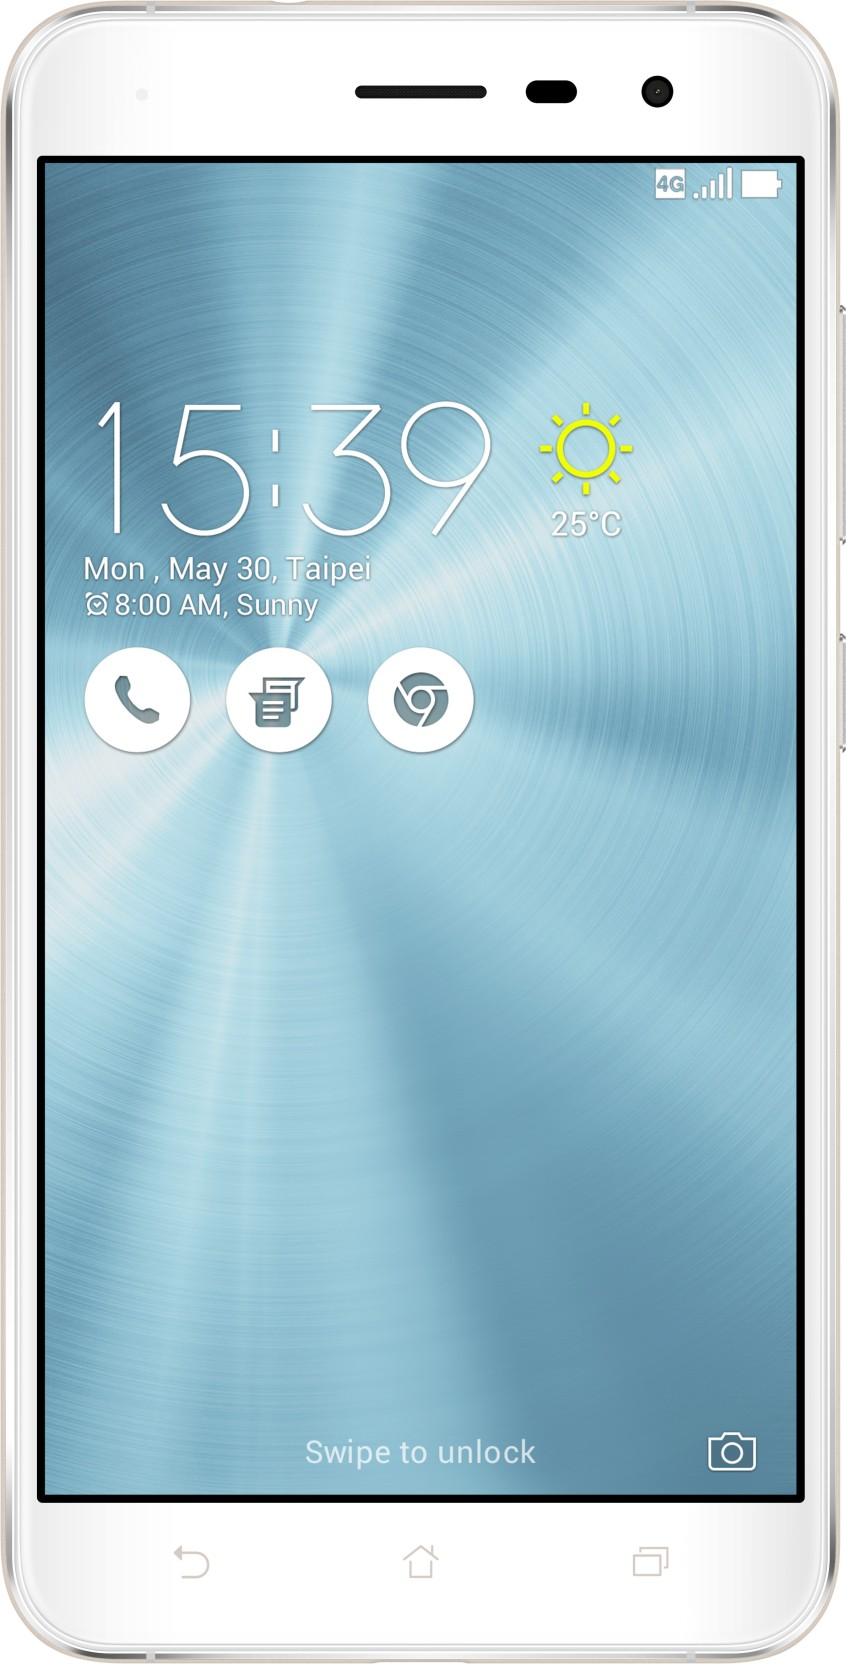 Asus Zenfone 3 White 32 Gb Online At Best Price Only On Max 32gb Grey Add To Cart